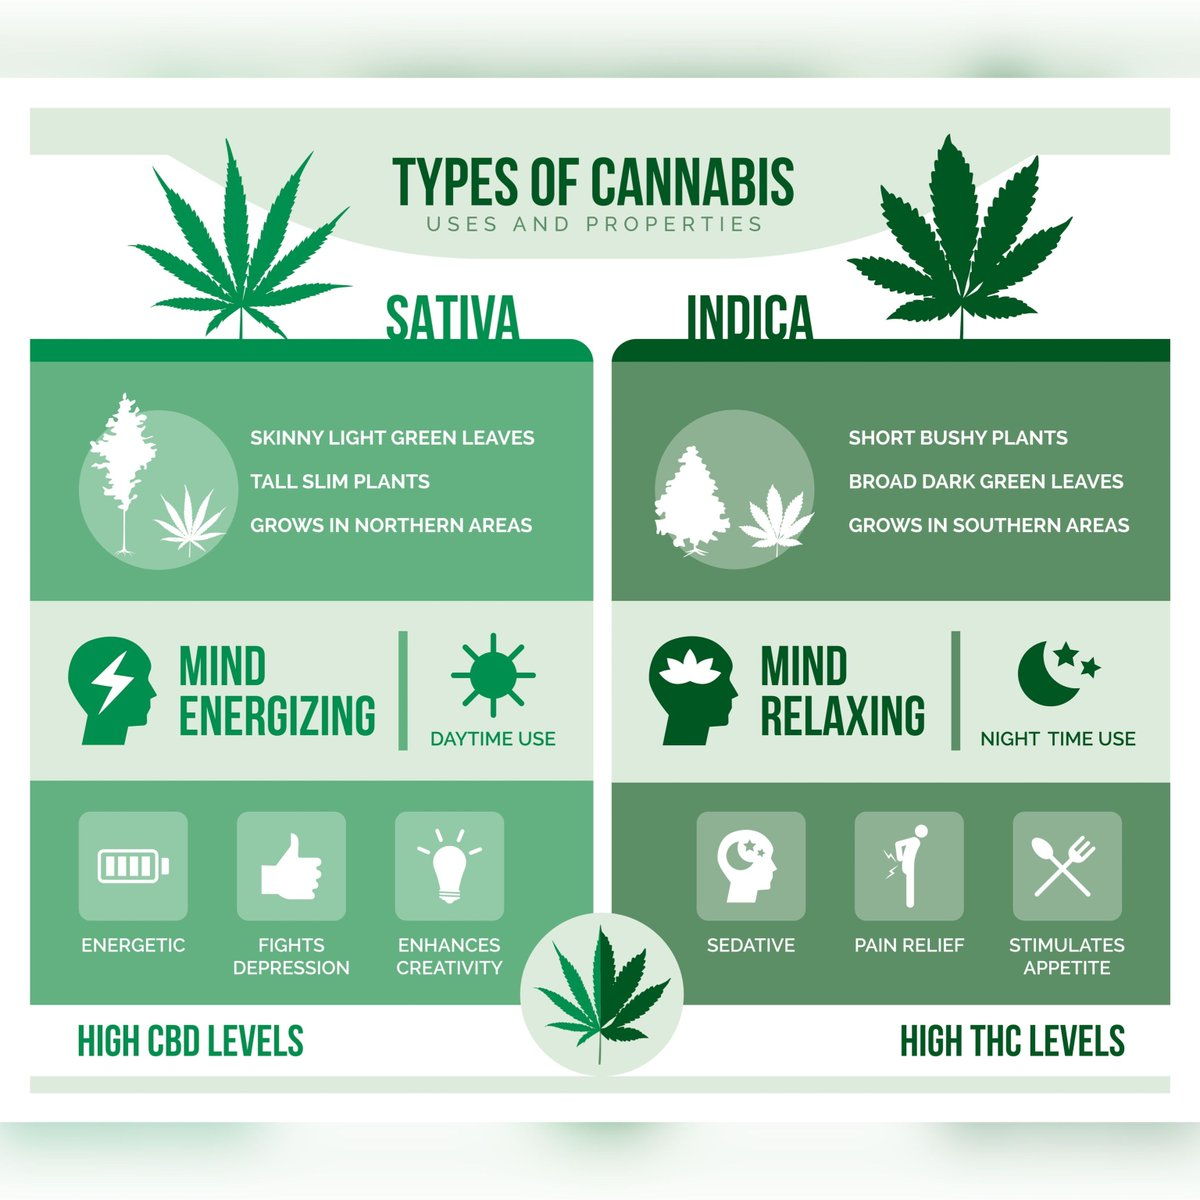 Which one are you picking for today? 🤔  #sativa #indica #cannabiscures https://t.co/KTYgWEo18P